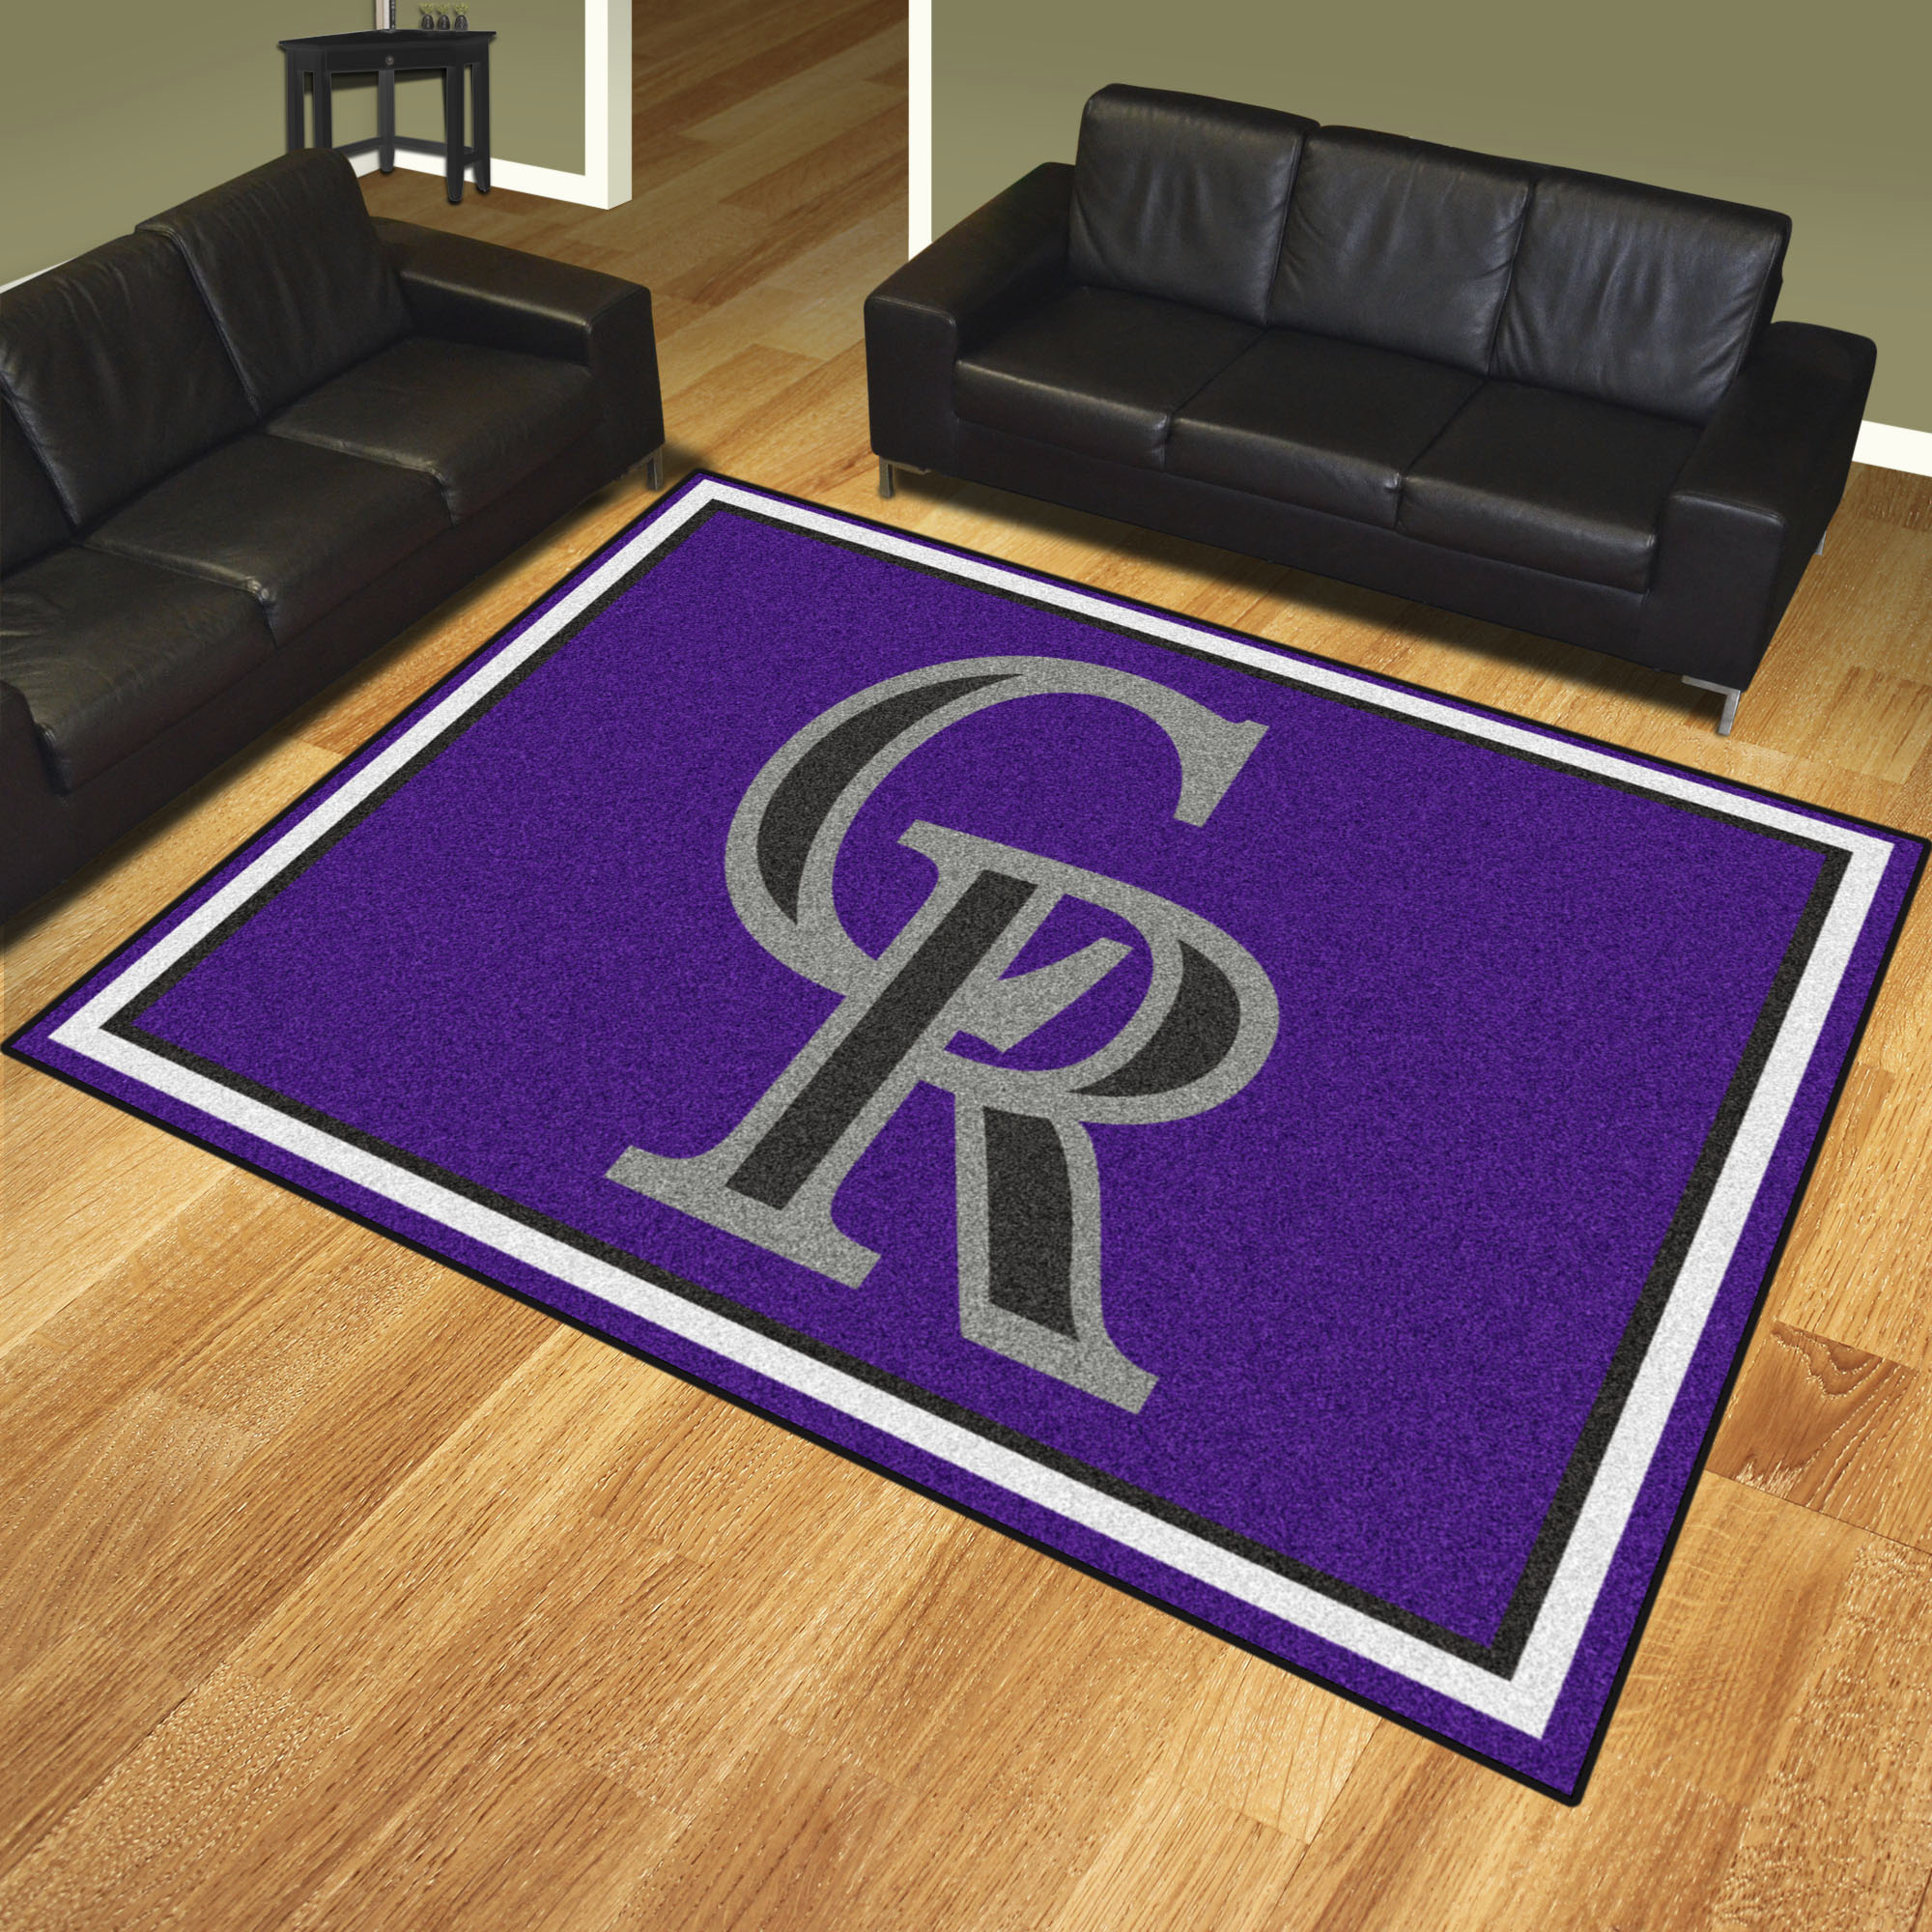 Colorado Rockies Ultra Plush 8x10 Area Rug